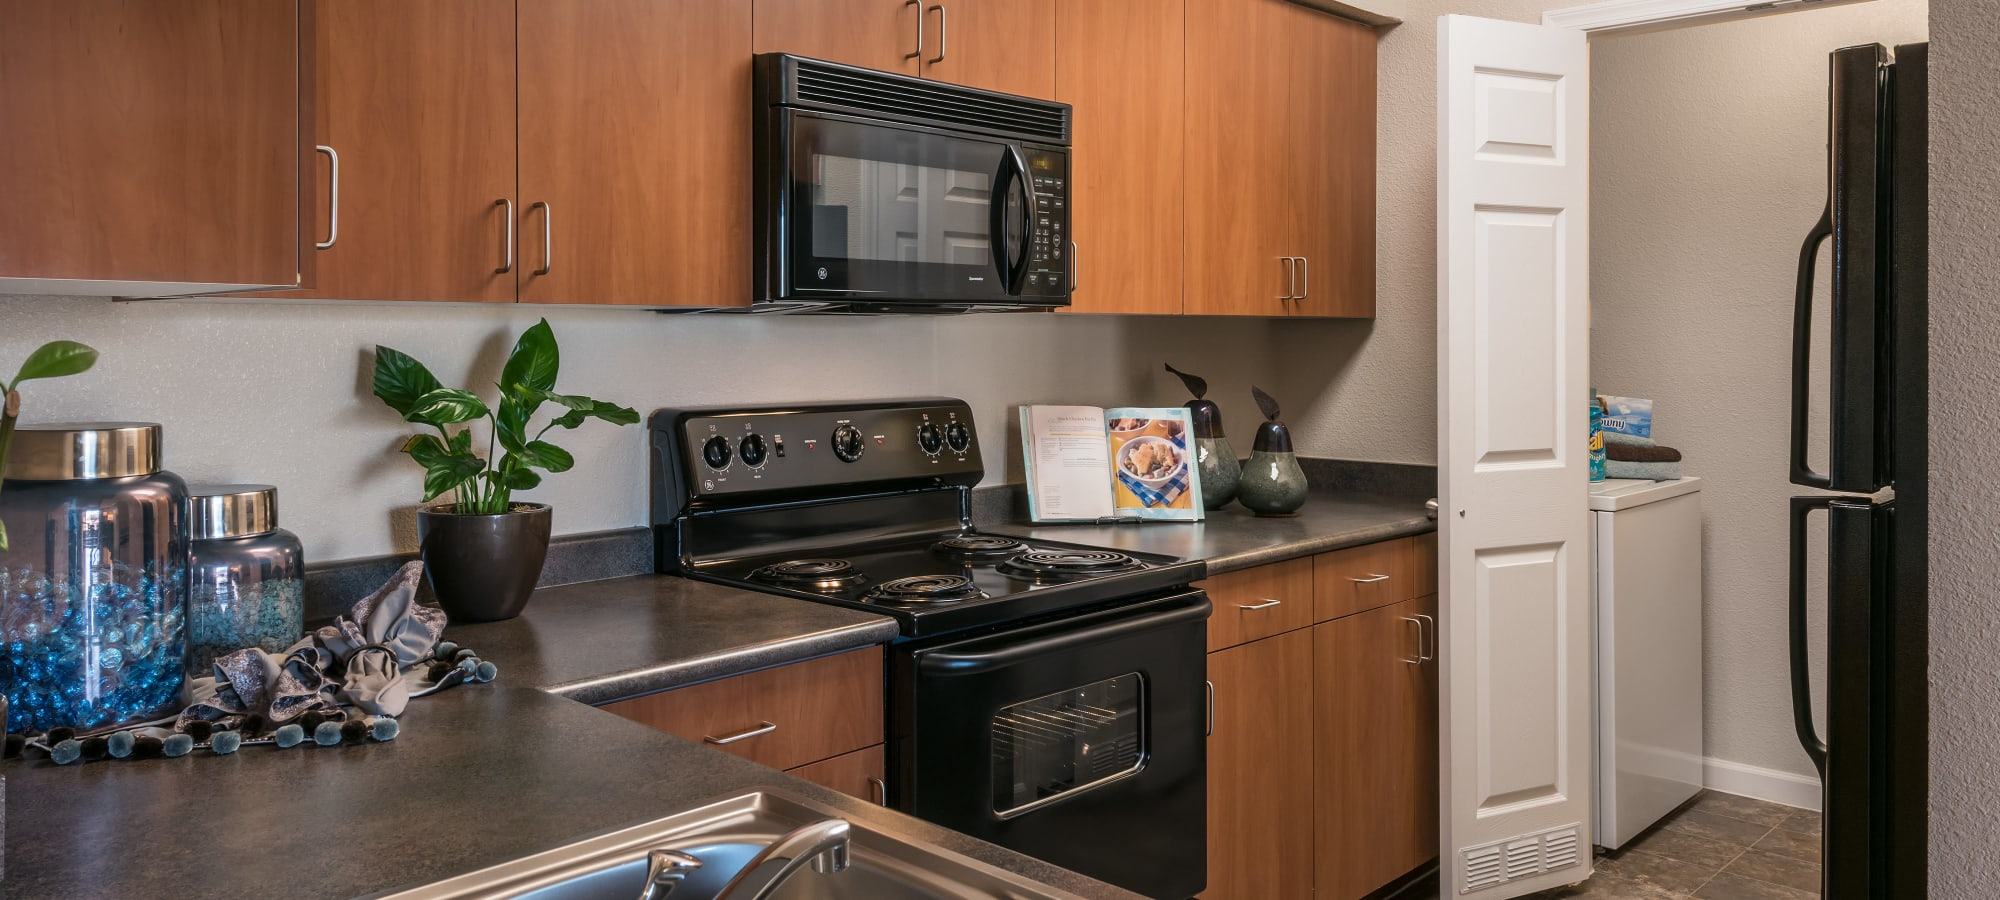 Inviting kitchen with laundry room at Azul at Spectrum in Gilbert, Arizona